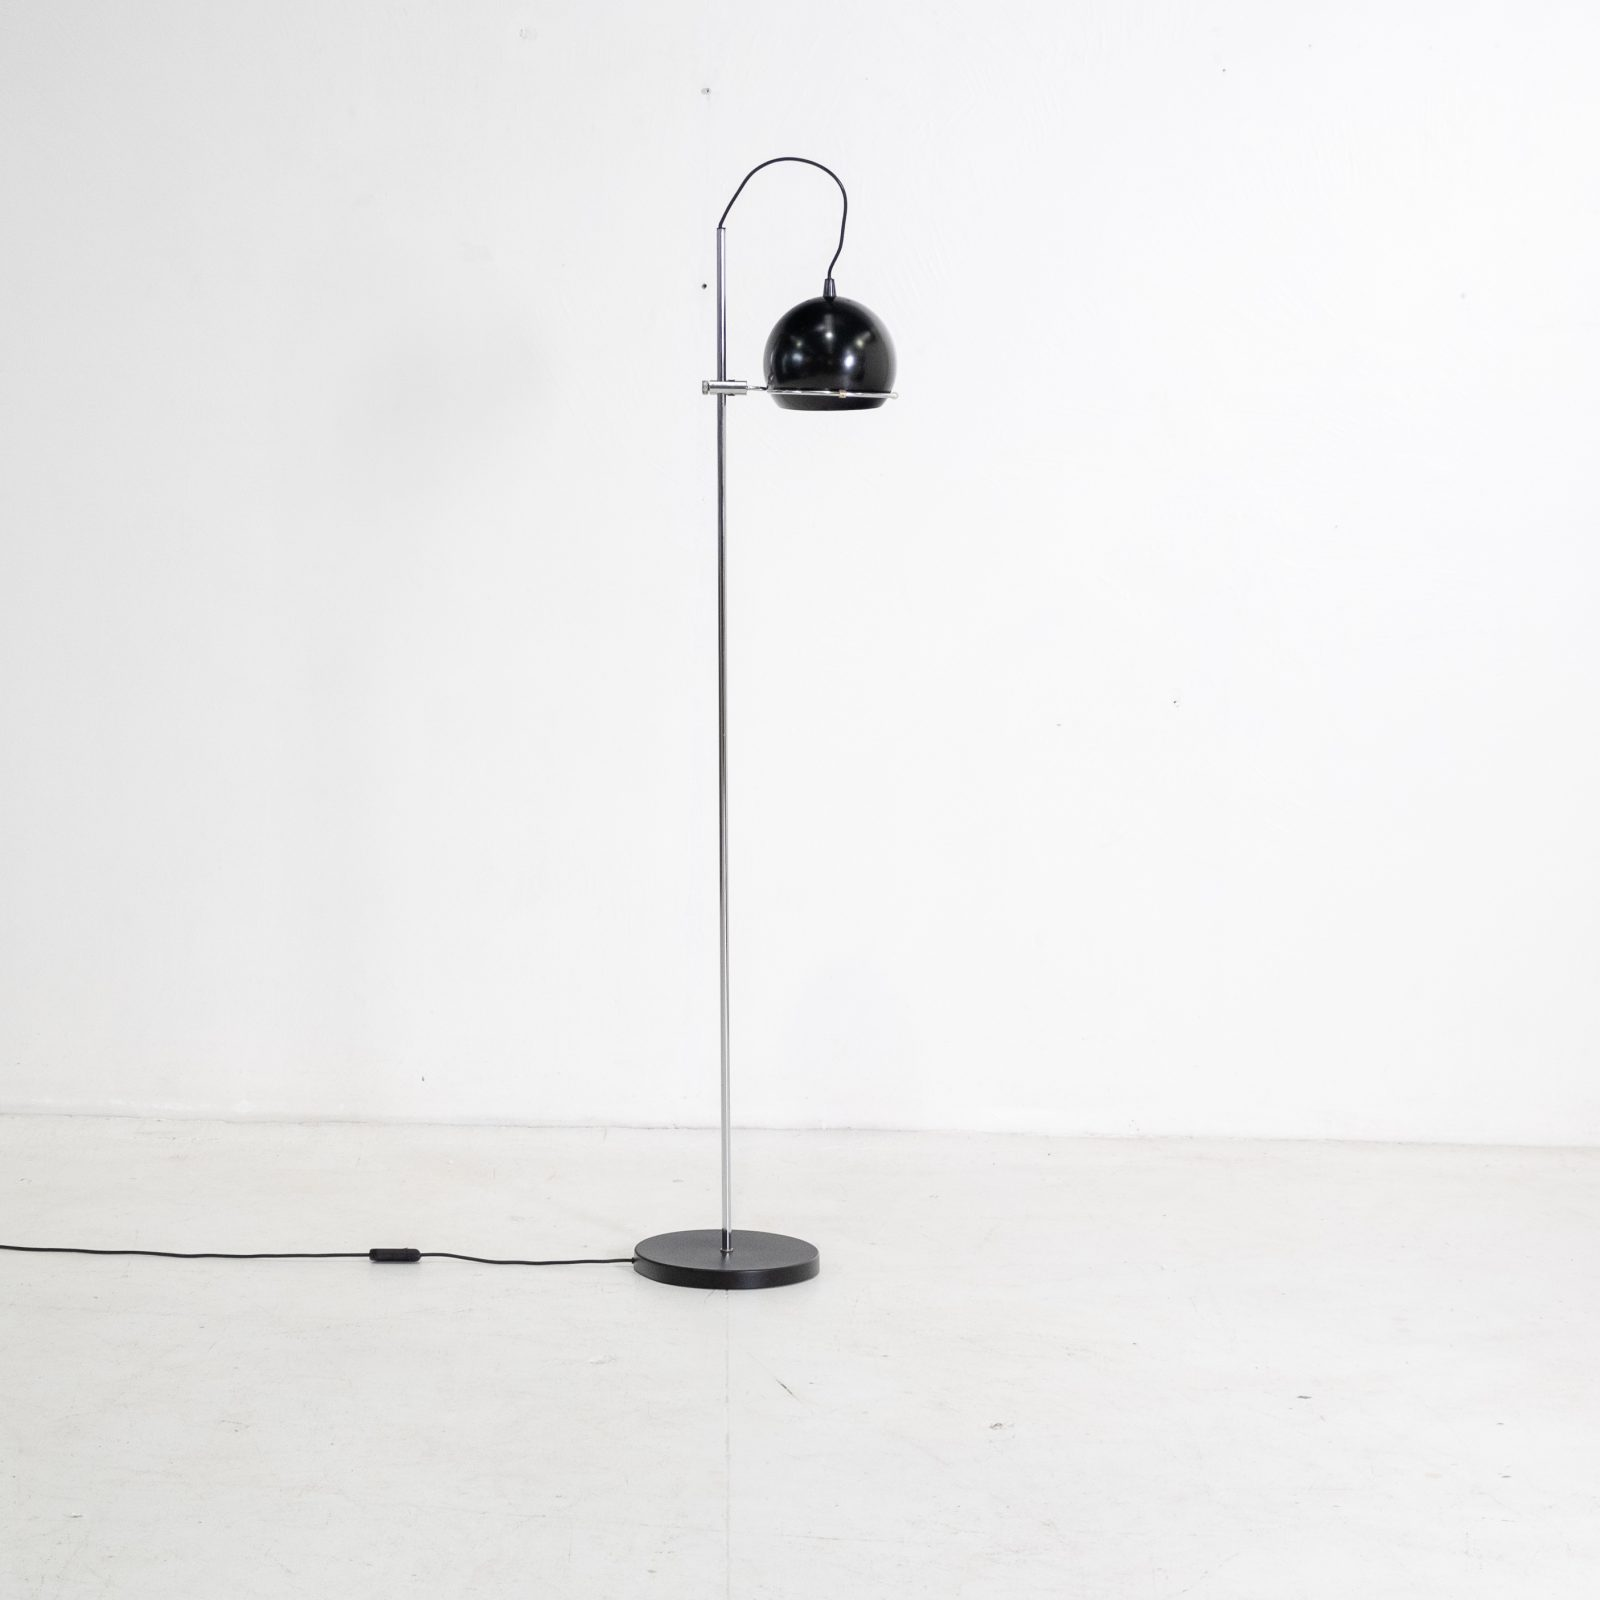 Ball Floor Lamp By Gepo, 1960s, The Netherlands Hero